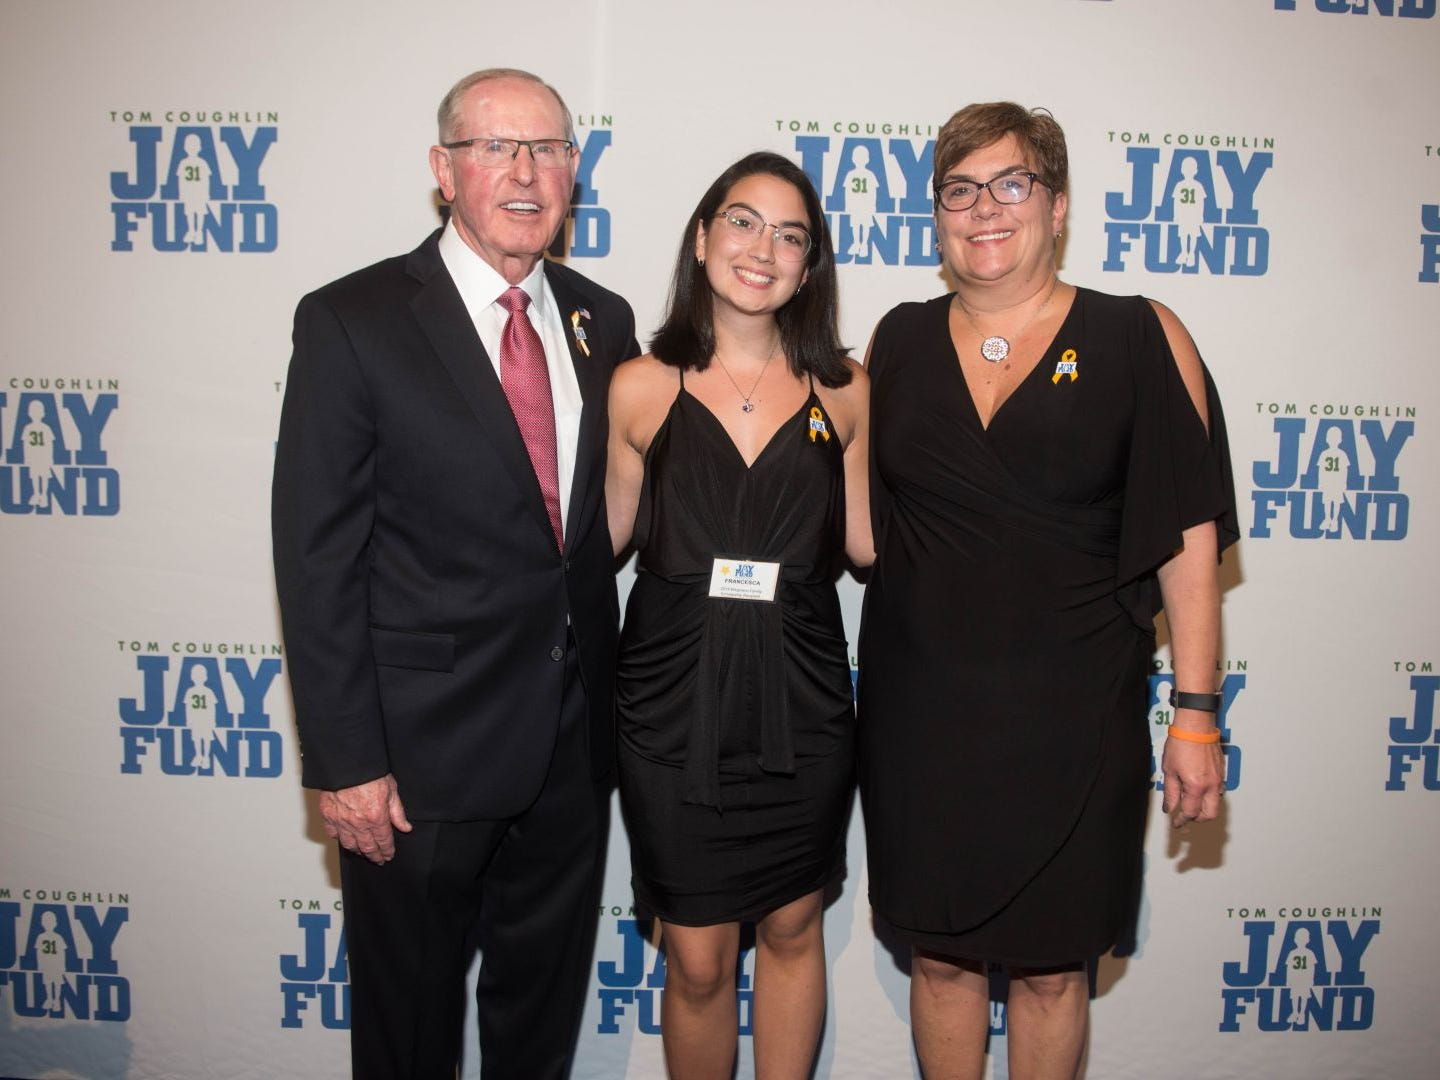 Tom Coughlin, Francesca Lentini and Nancy Lentini. The 14th annual Jay Fund Champions for Children Gala was held at Cipriani 42nd Street. 09/21/2018